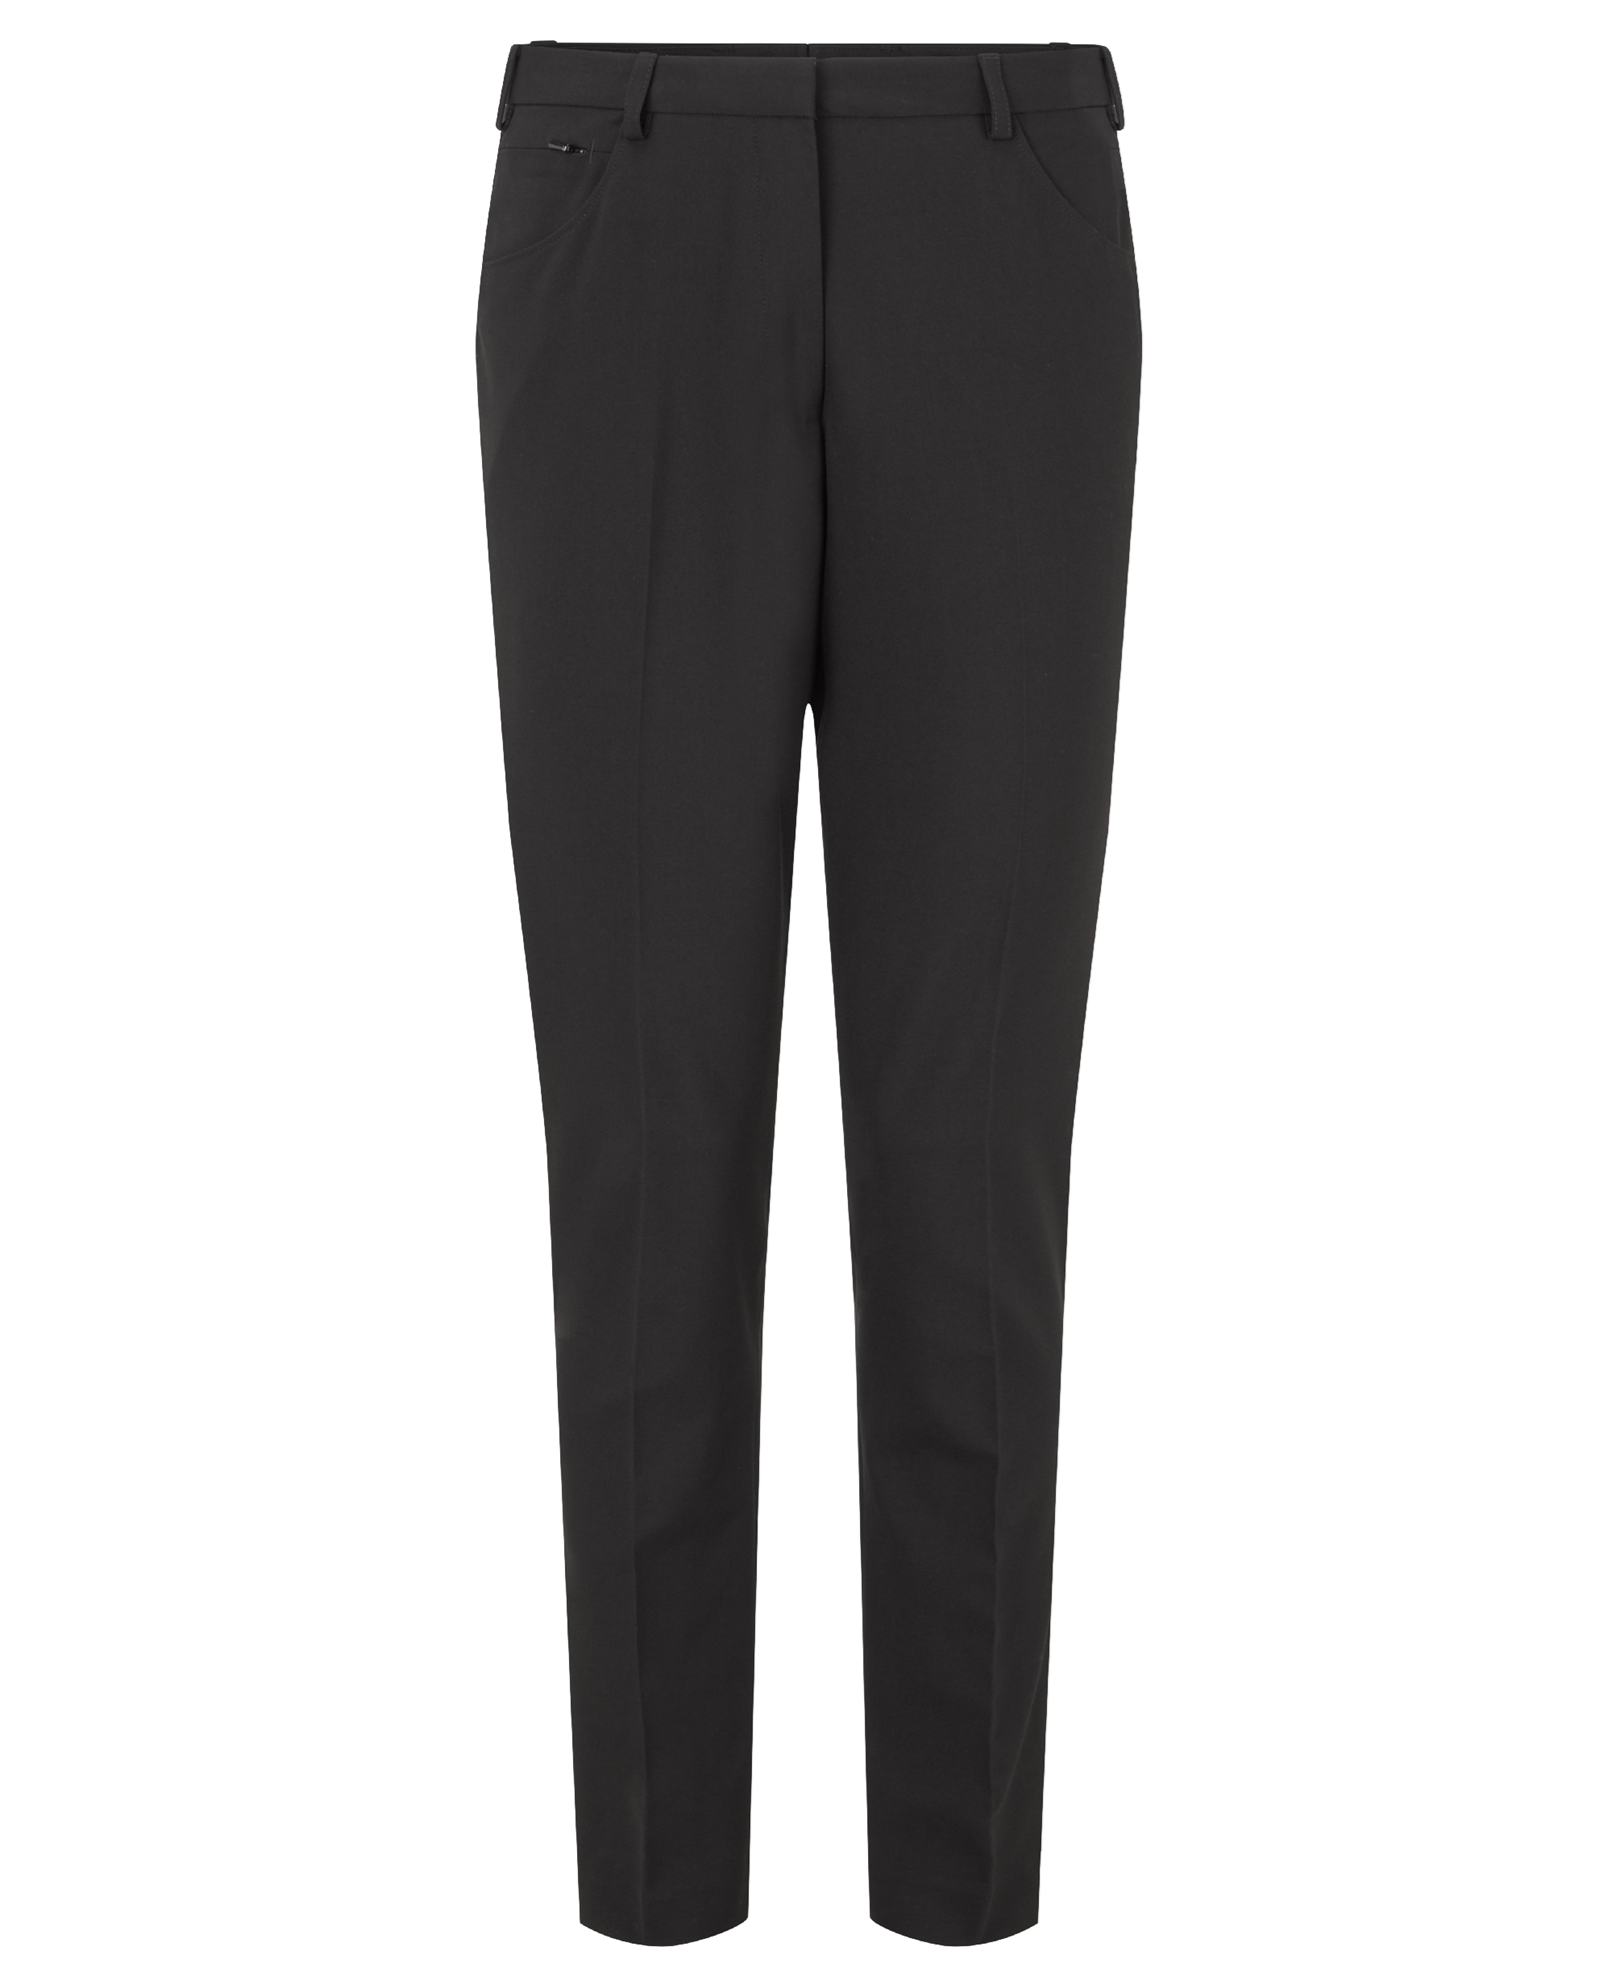 Picture of Chiswick Ladies Slim Fit Trouser - Black